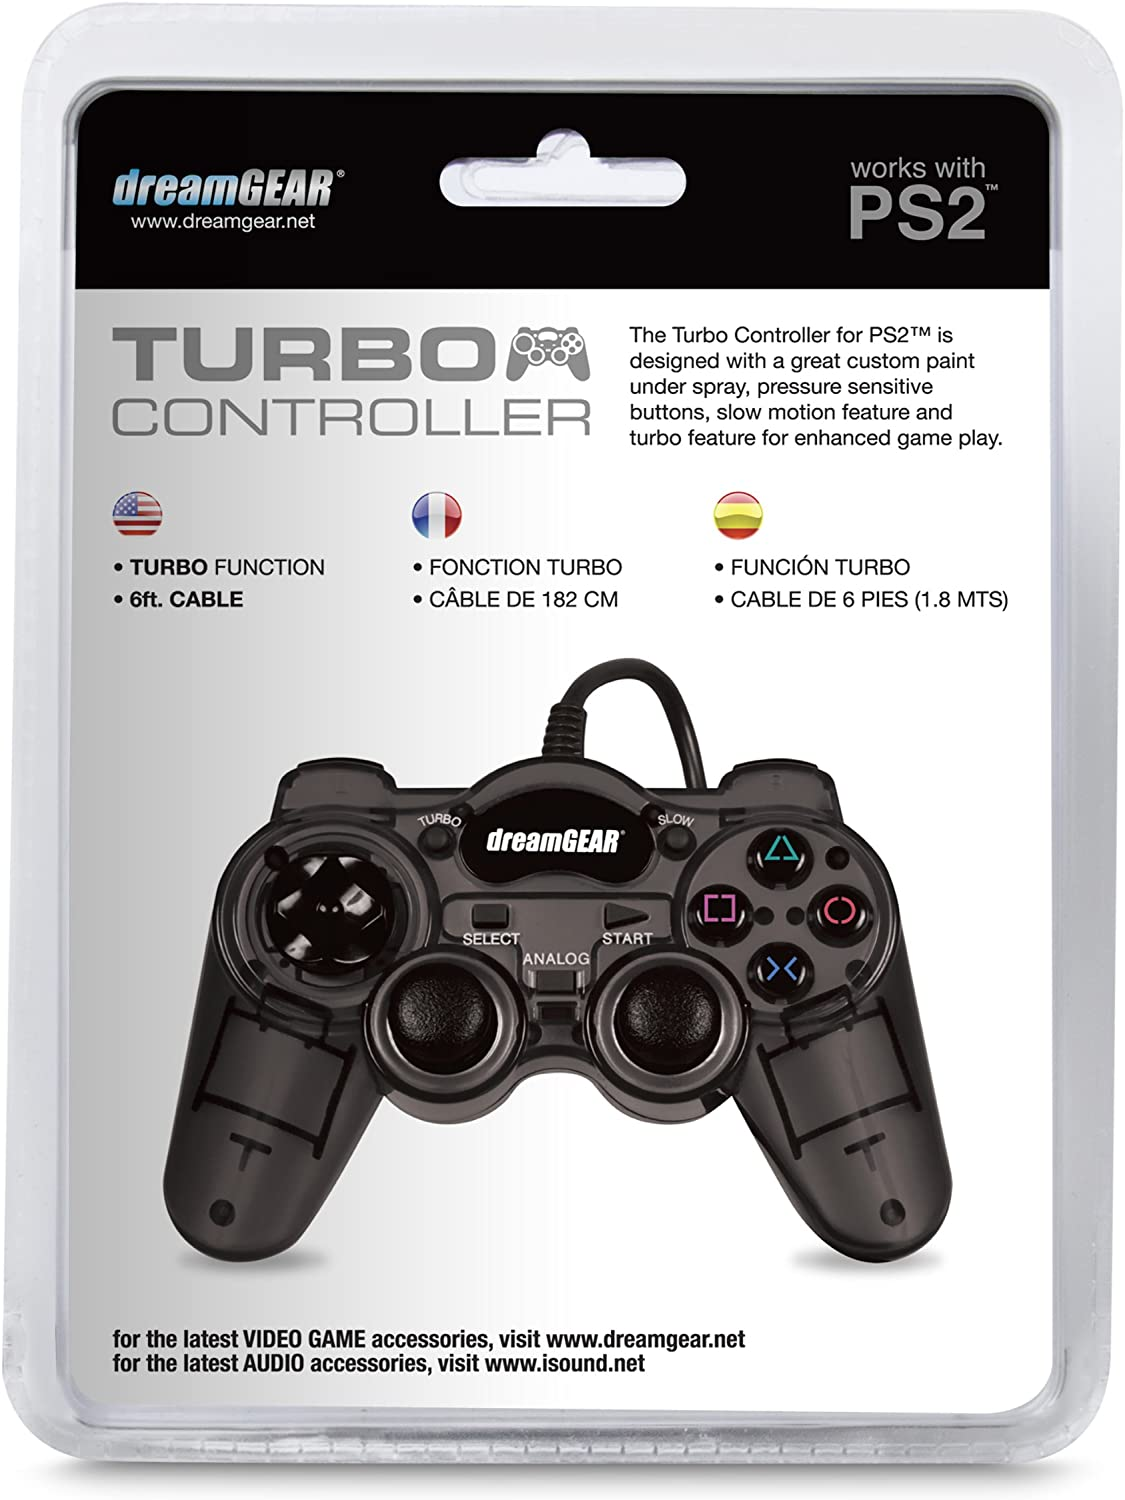 Amazon.com: DreamGEAR PS2 Wired Turbo Controller - Smoke Black: Video Games